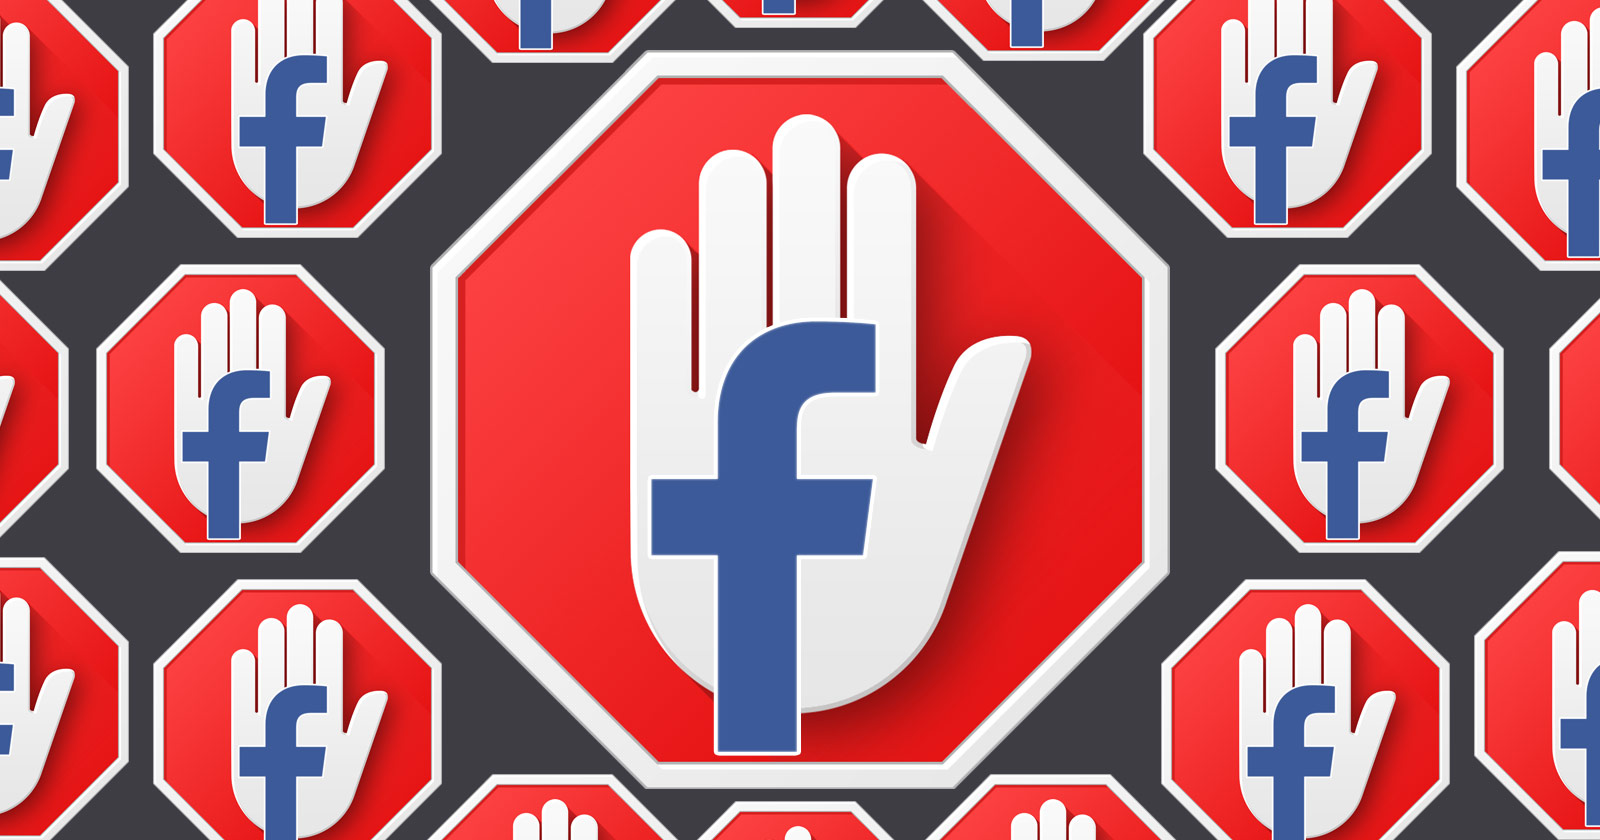 A graphic showing multiple stop signs with white hand icons depicting STOP imposed on them and the F facebook logo imposed on the hands